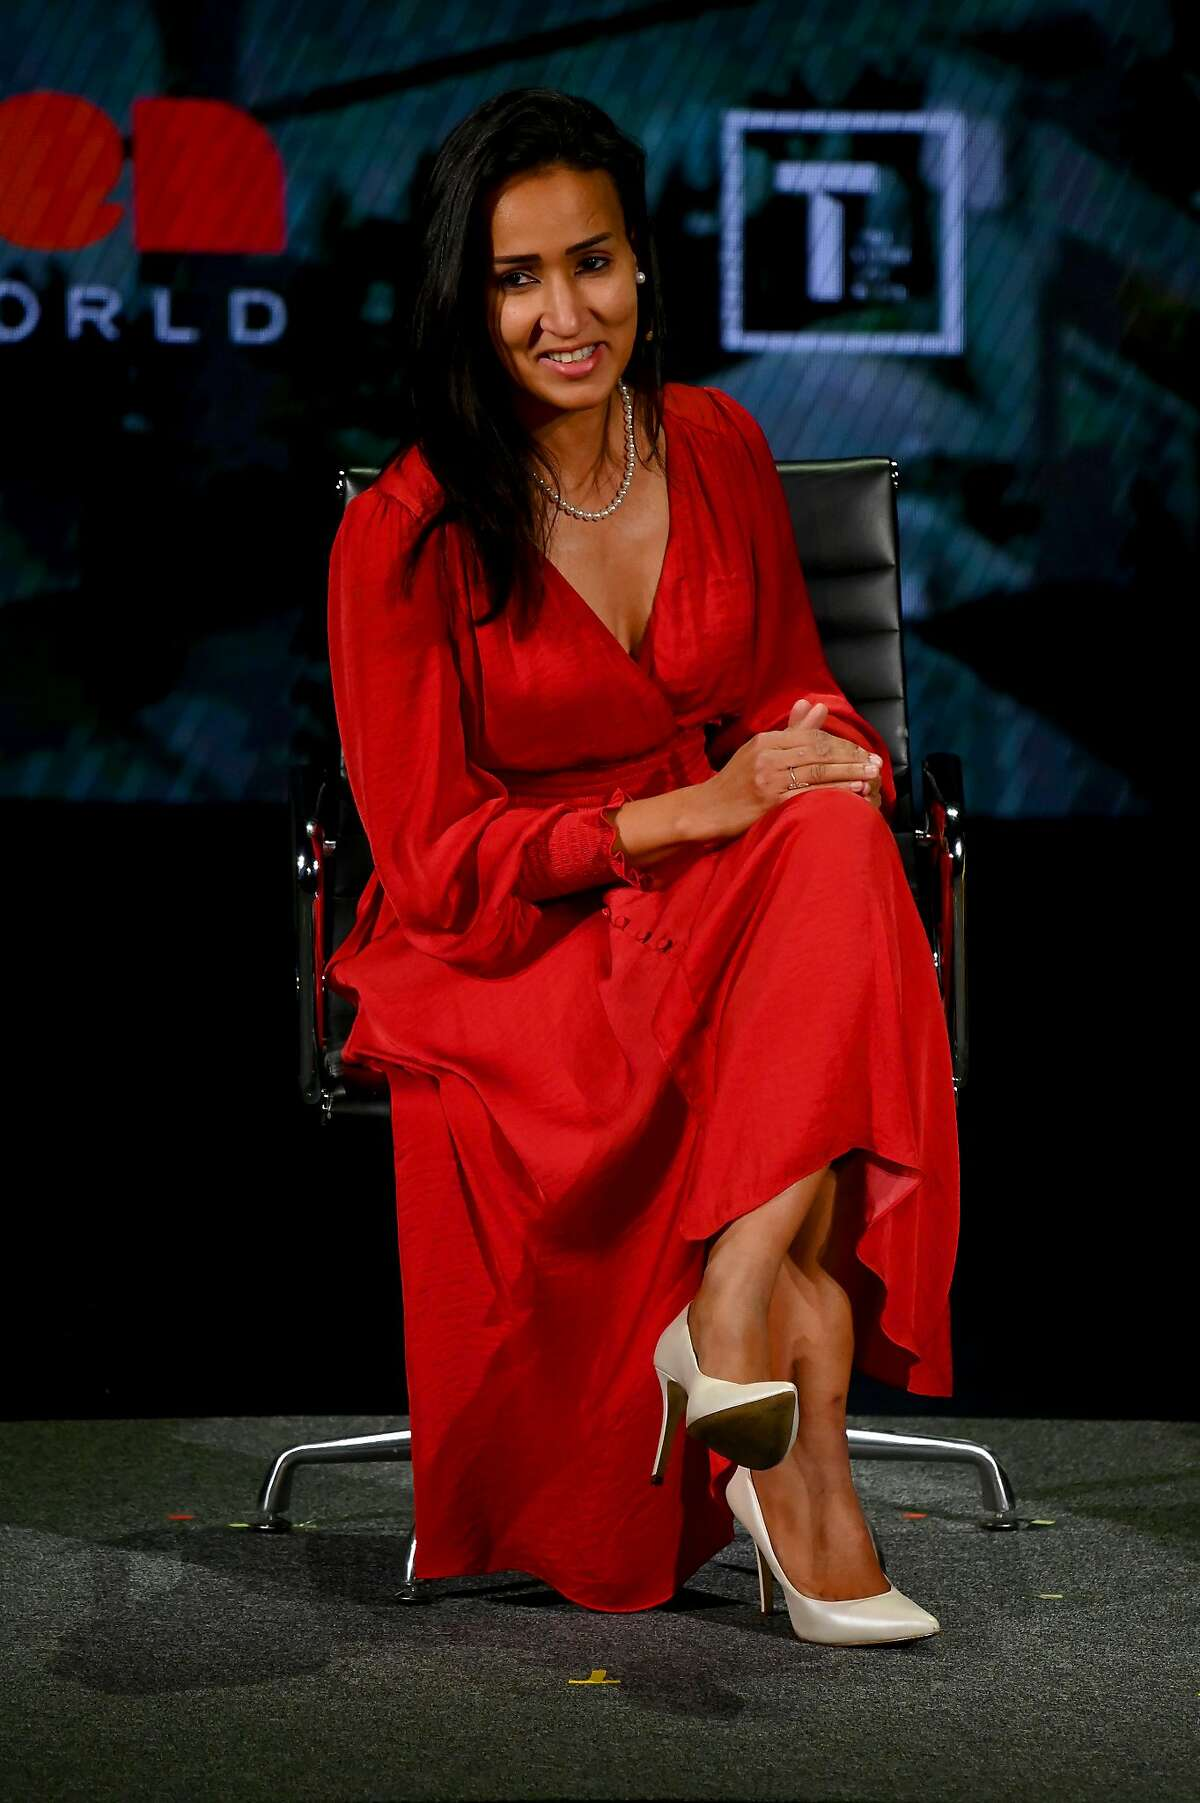 NEW YORK, NEW YORK - APRIL 10: Manal Al-Sharif speaks at the 10th Anniversary Women In The World Summit at David H. Koch Theater at Lincoln Center on April 10, 2019 in New York City. (Photo by Mike Coppola/Getty Images)